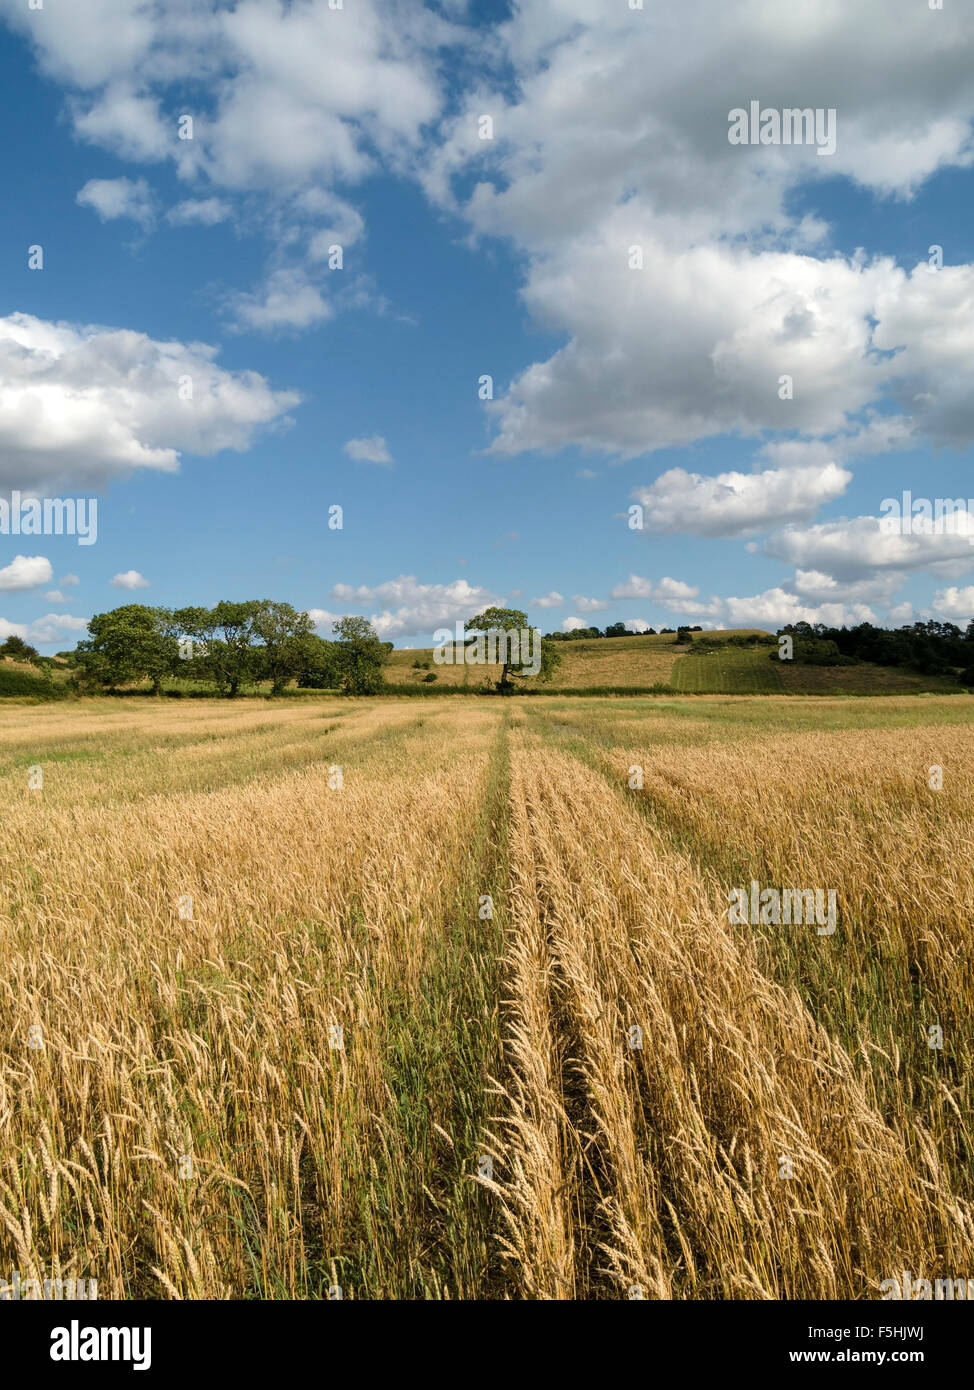 Ripe yellow wheat field, Leicestershire with blue sky above, England, UK - Stock Image